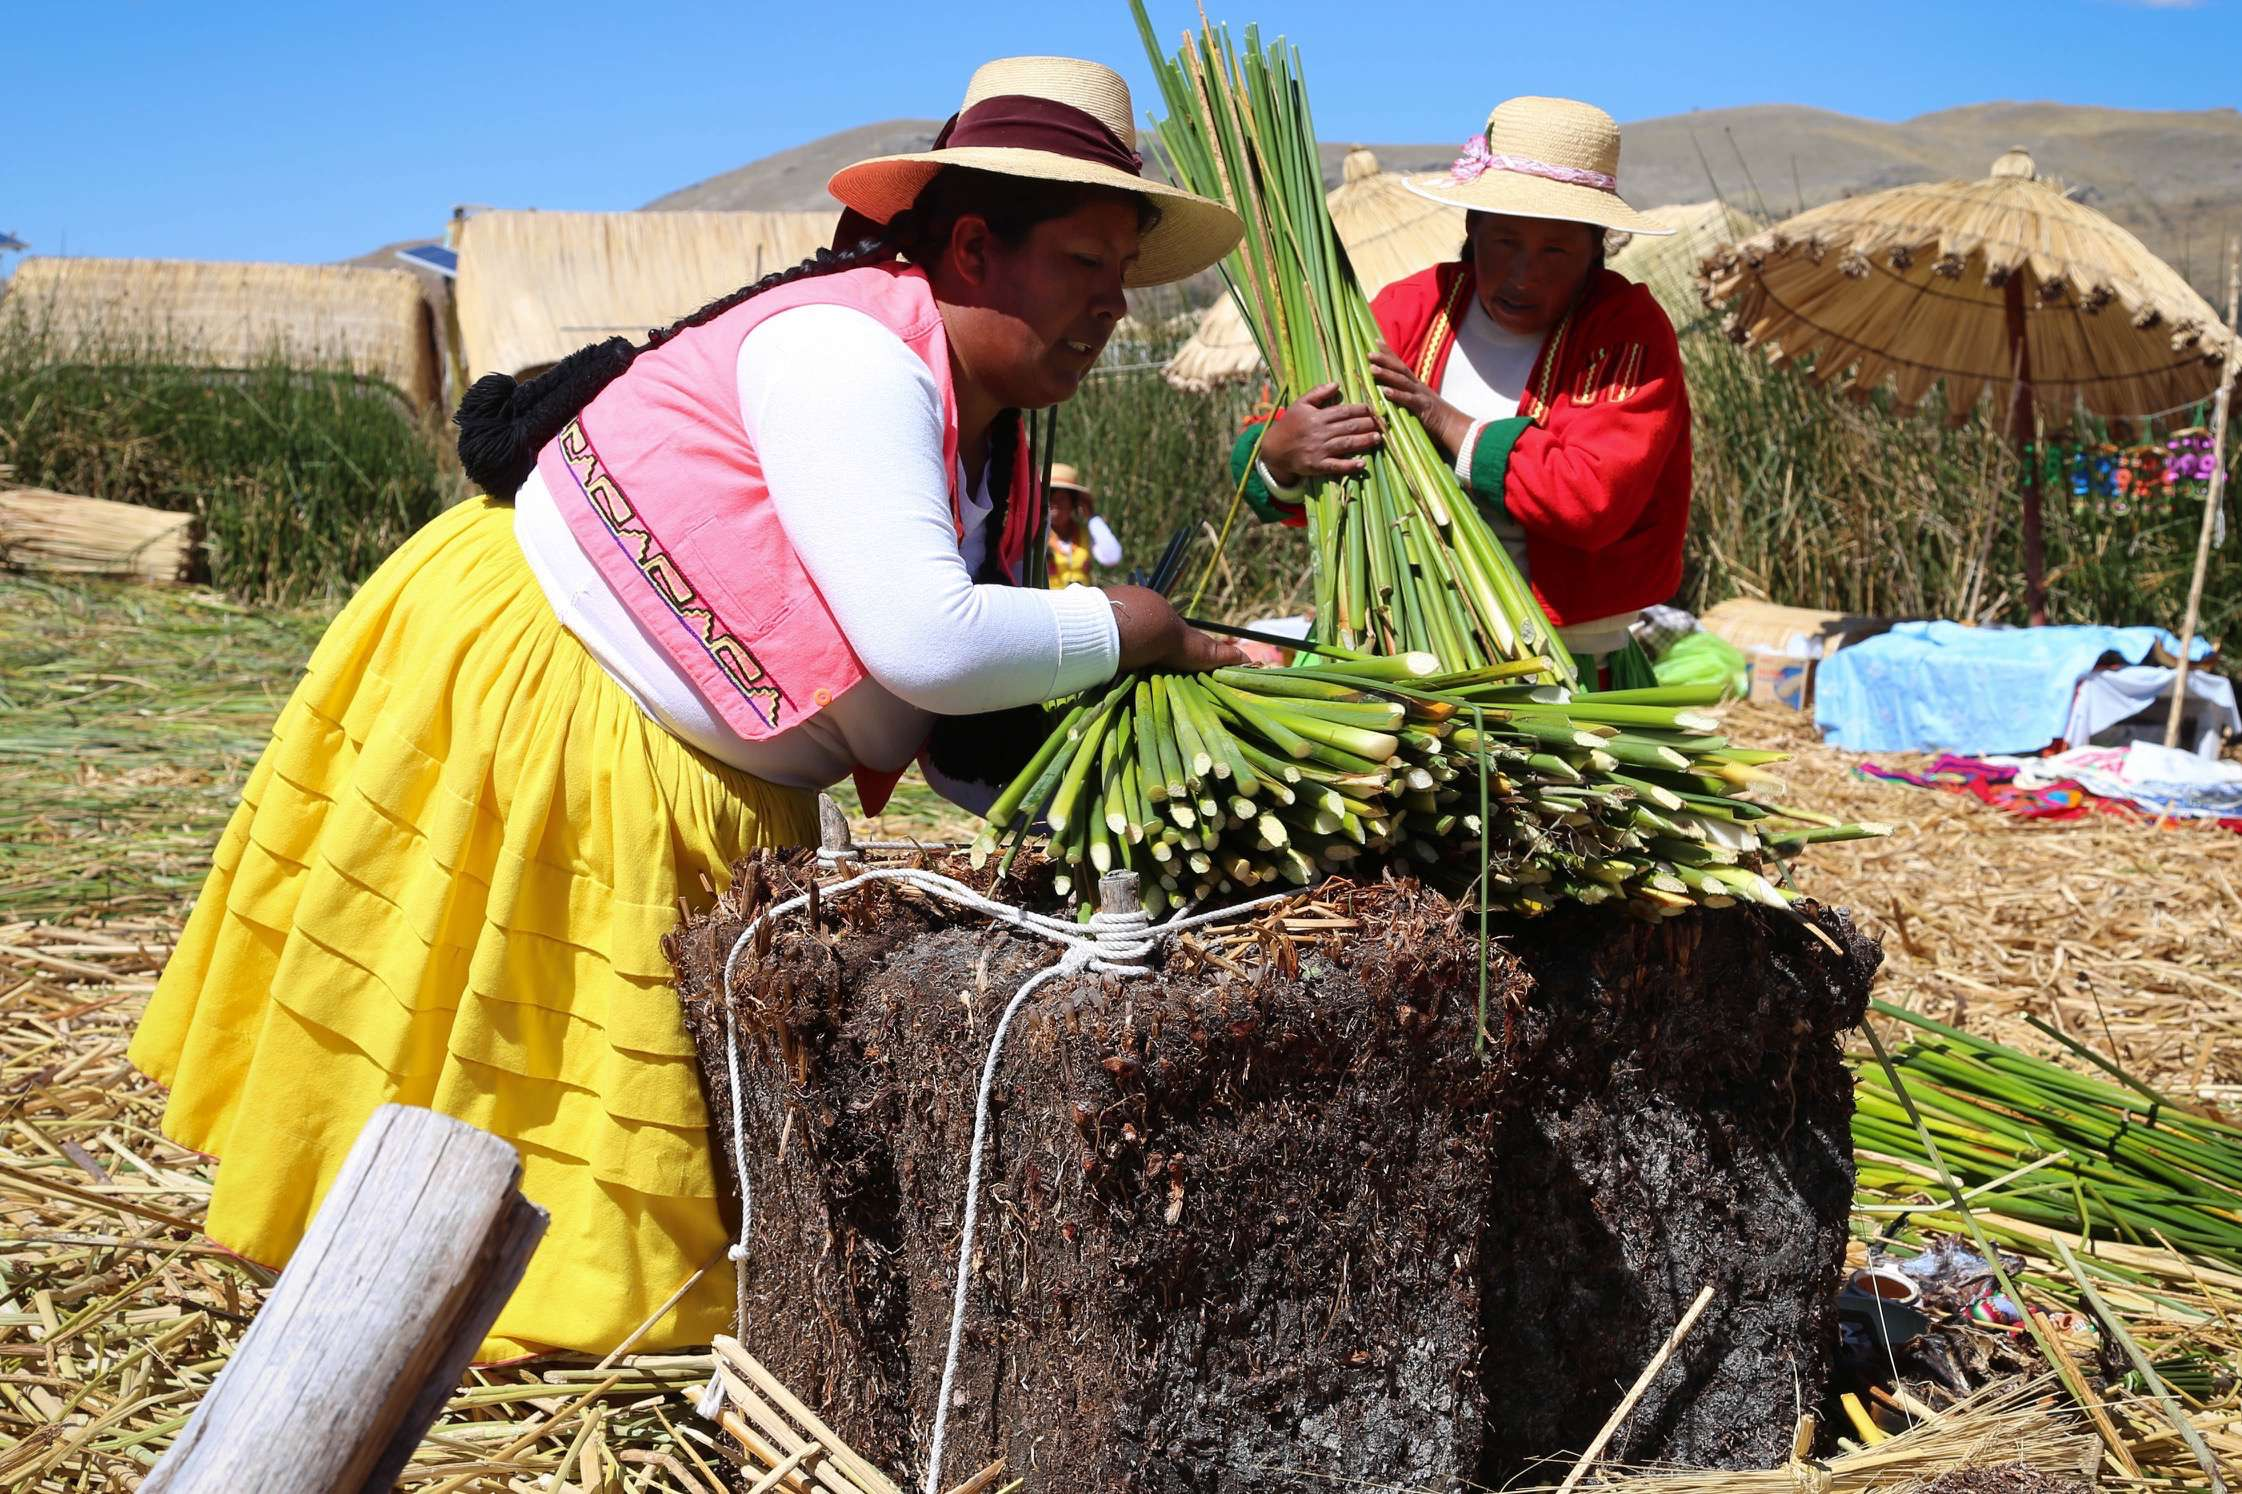 To rebuild their island, dried totora reeds are piled on top, as shown in this demonstration.